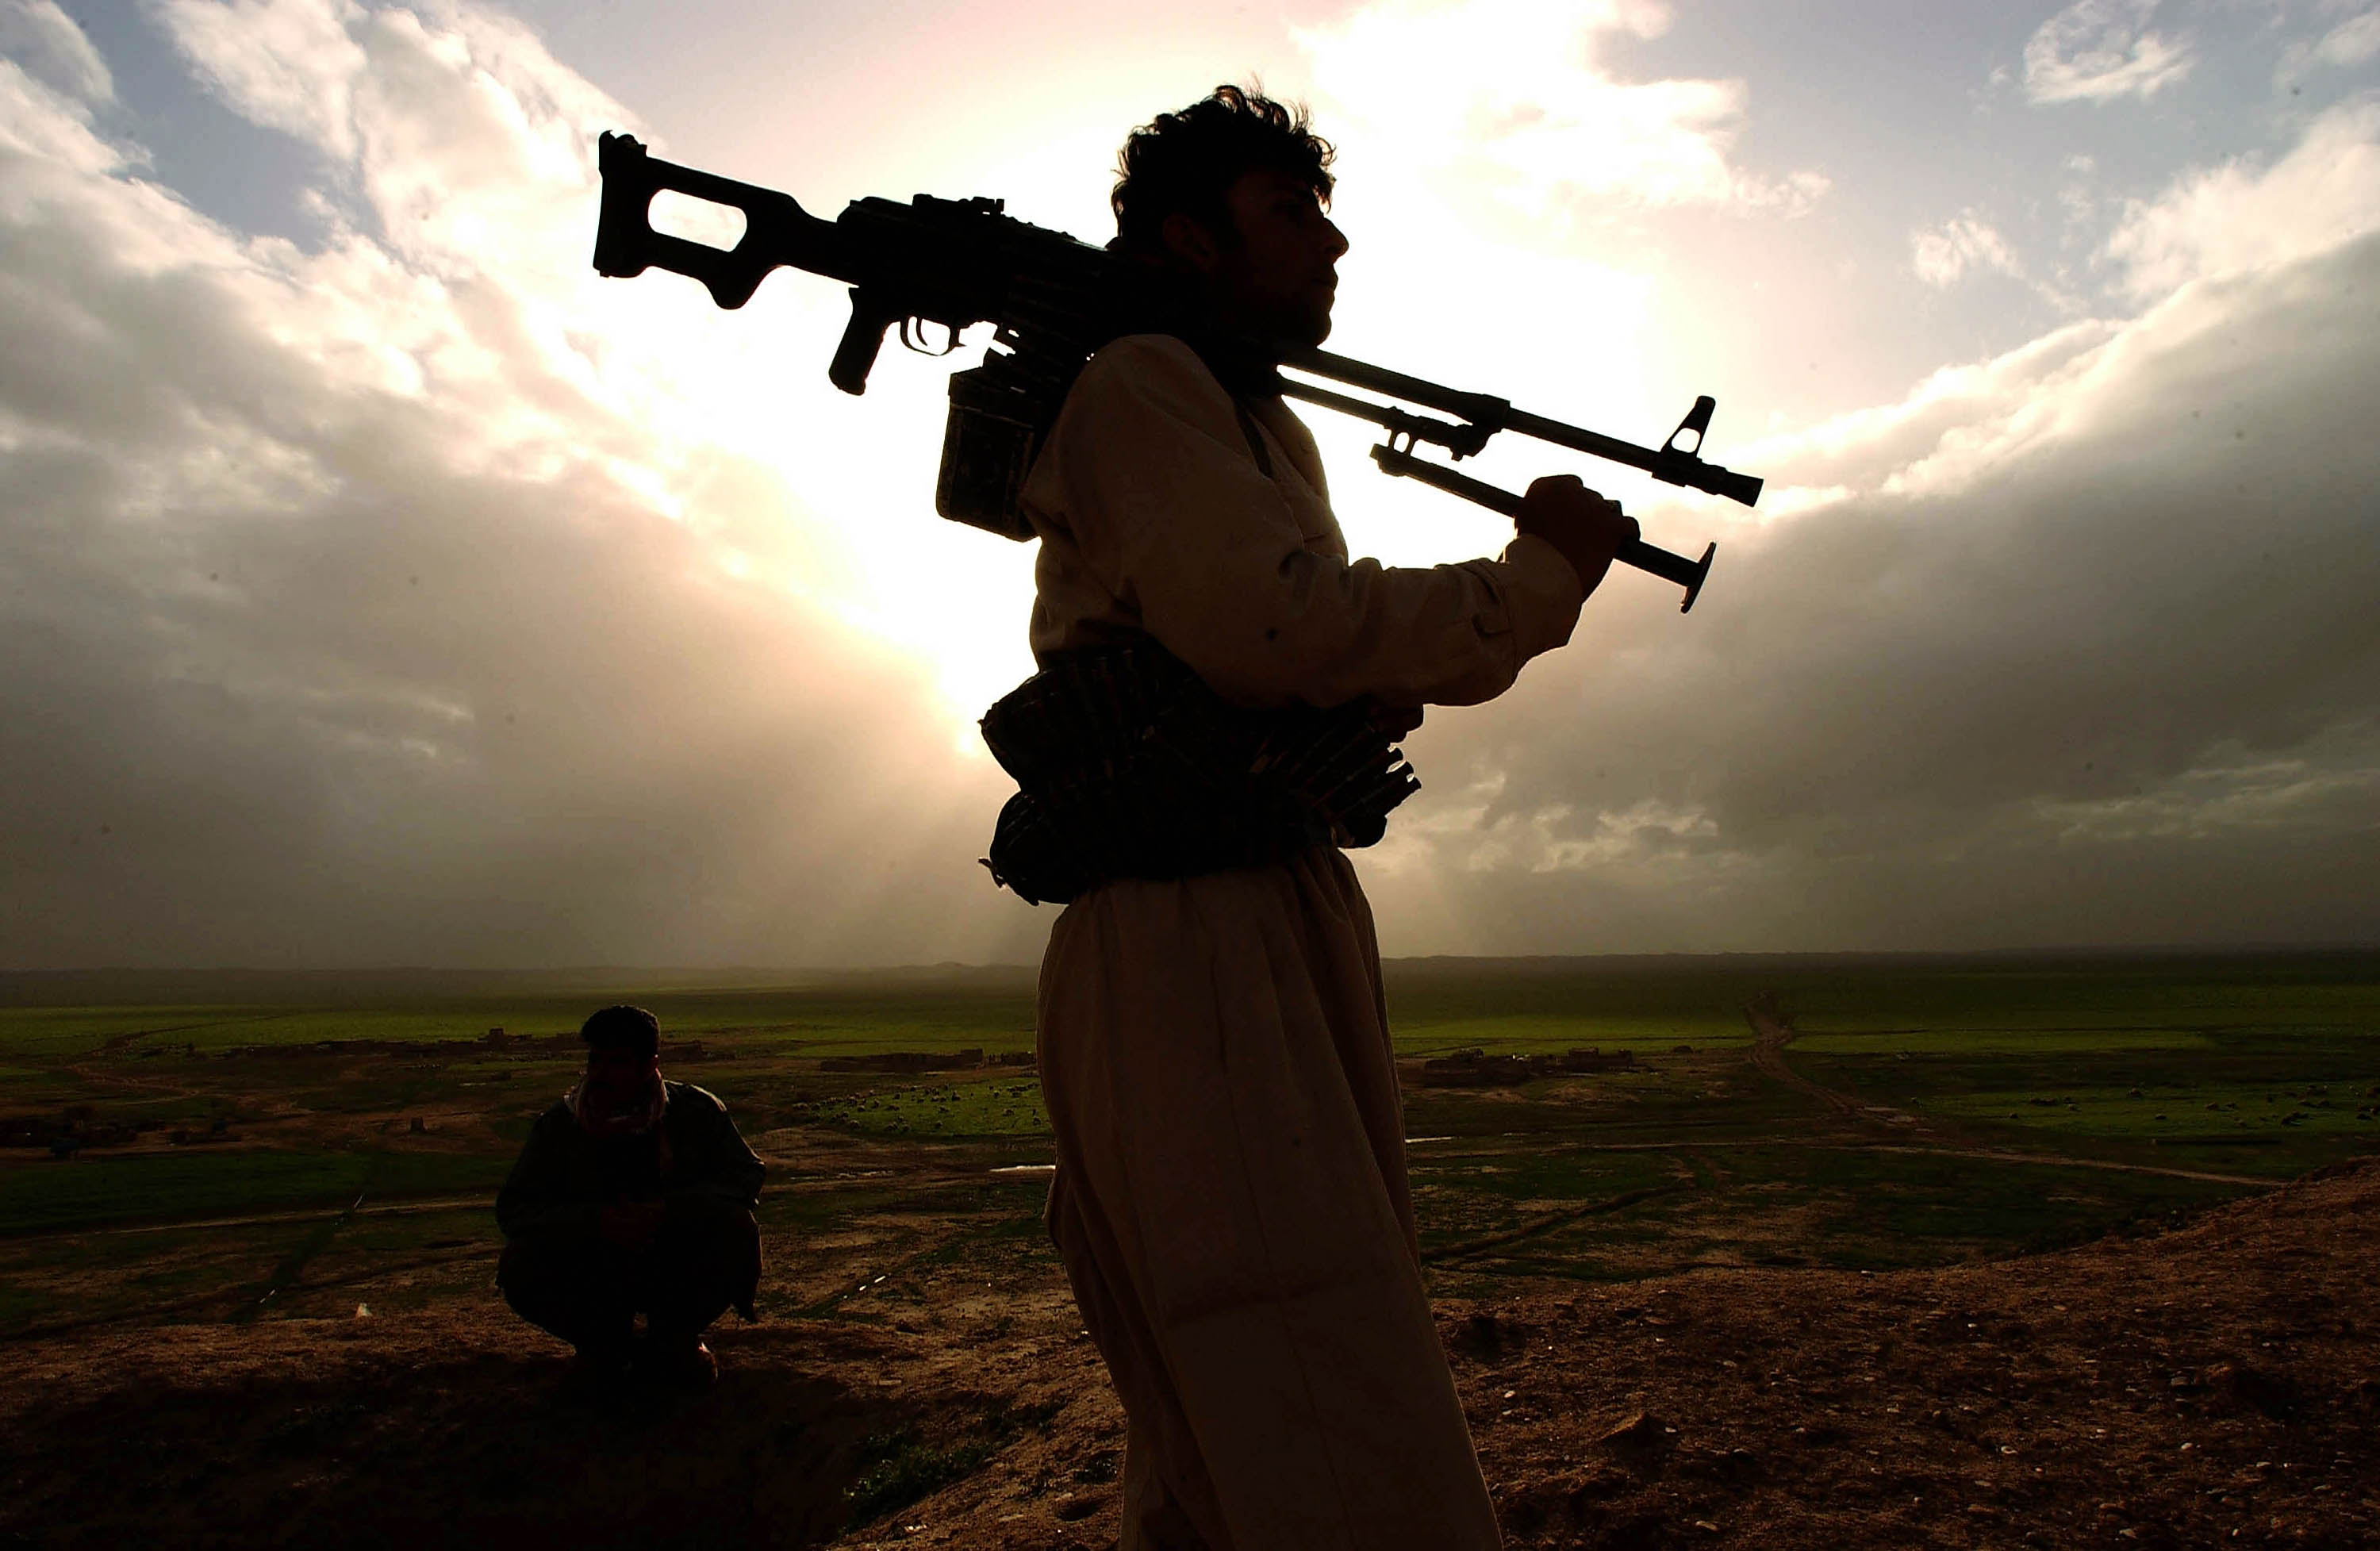 Kurds Remain Better Option in Fight With ISIS